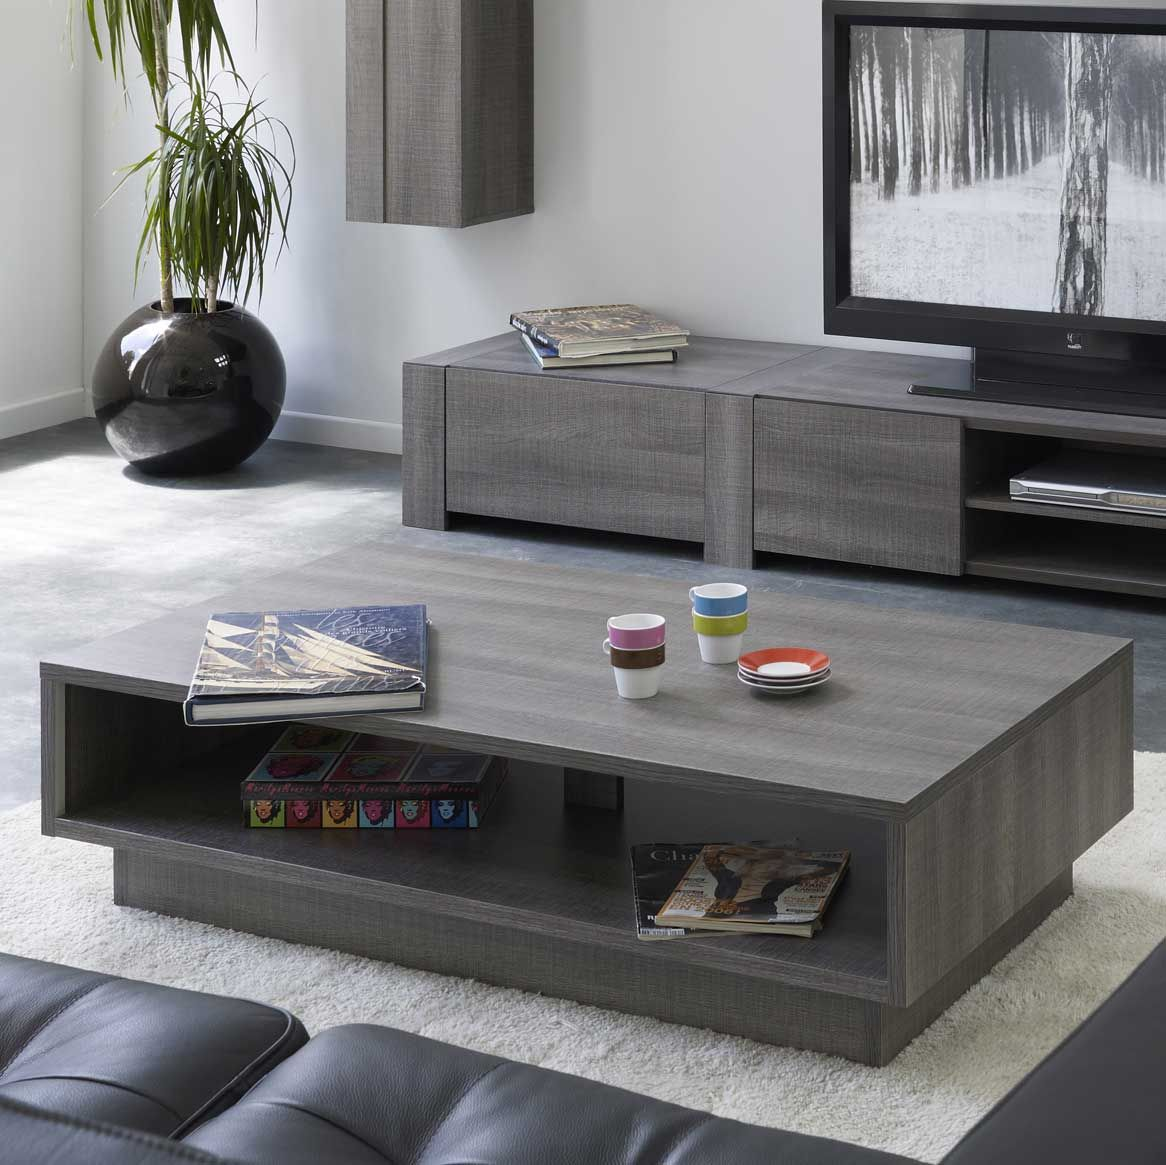 table basse rectangulaire en bois au salon pinterest table basse rectangulaire en. Black Bedroom Furniture Sets. Home Design Ideas